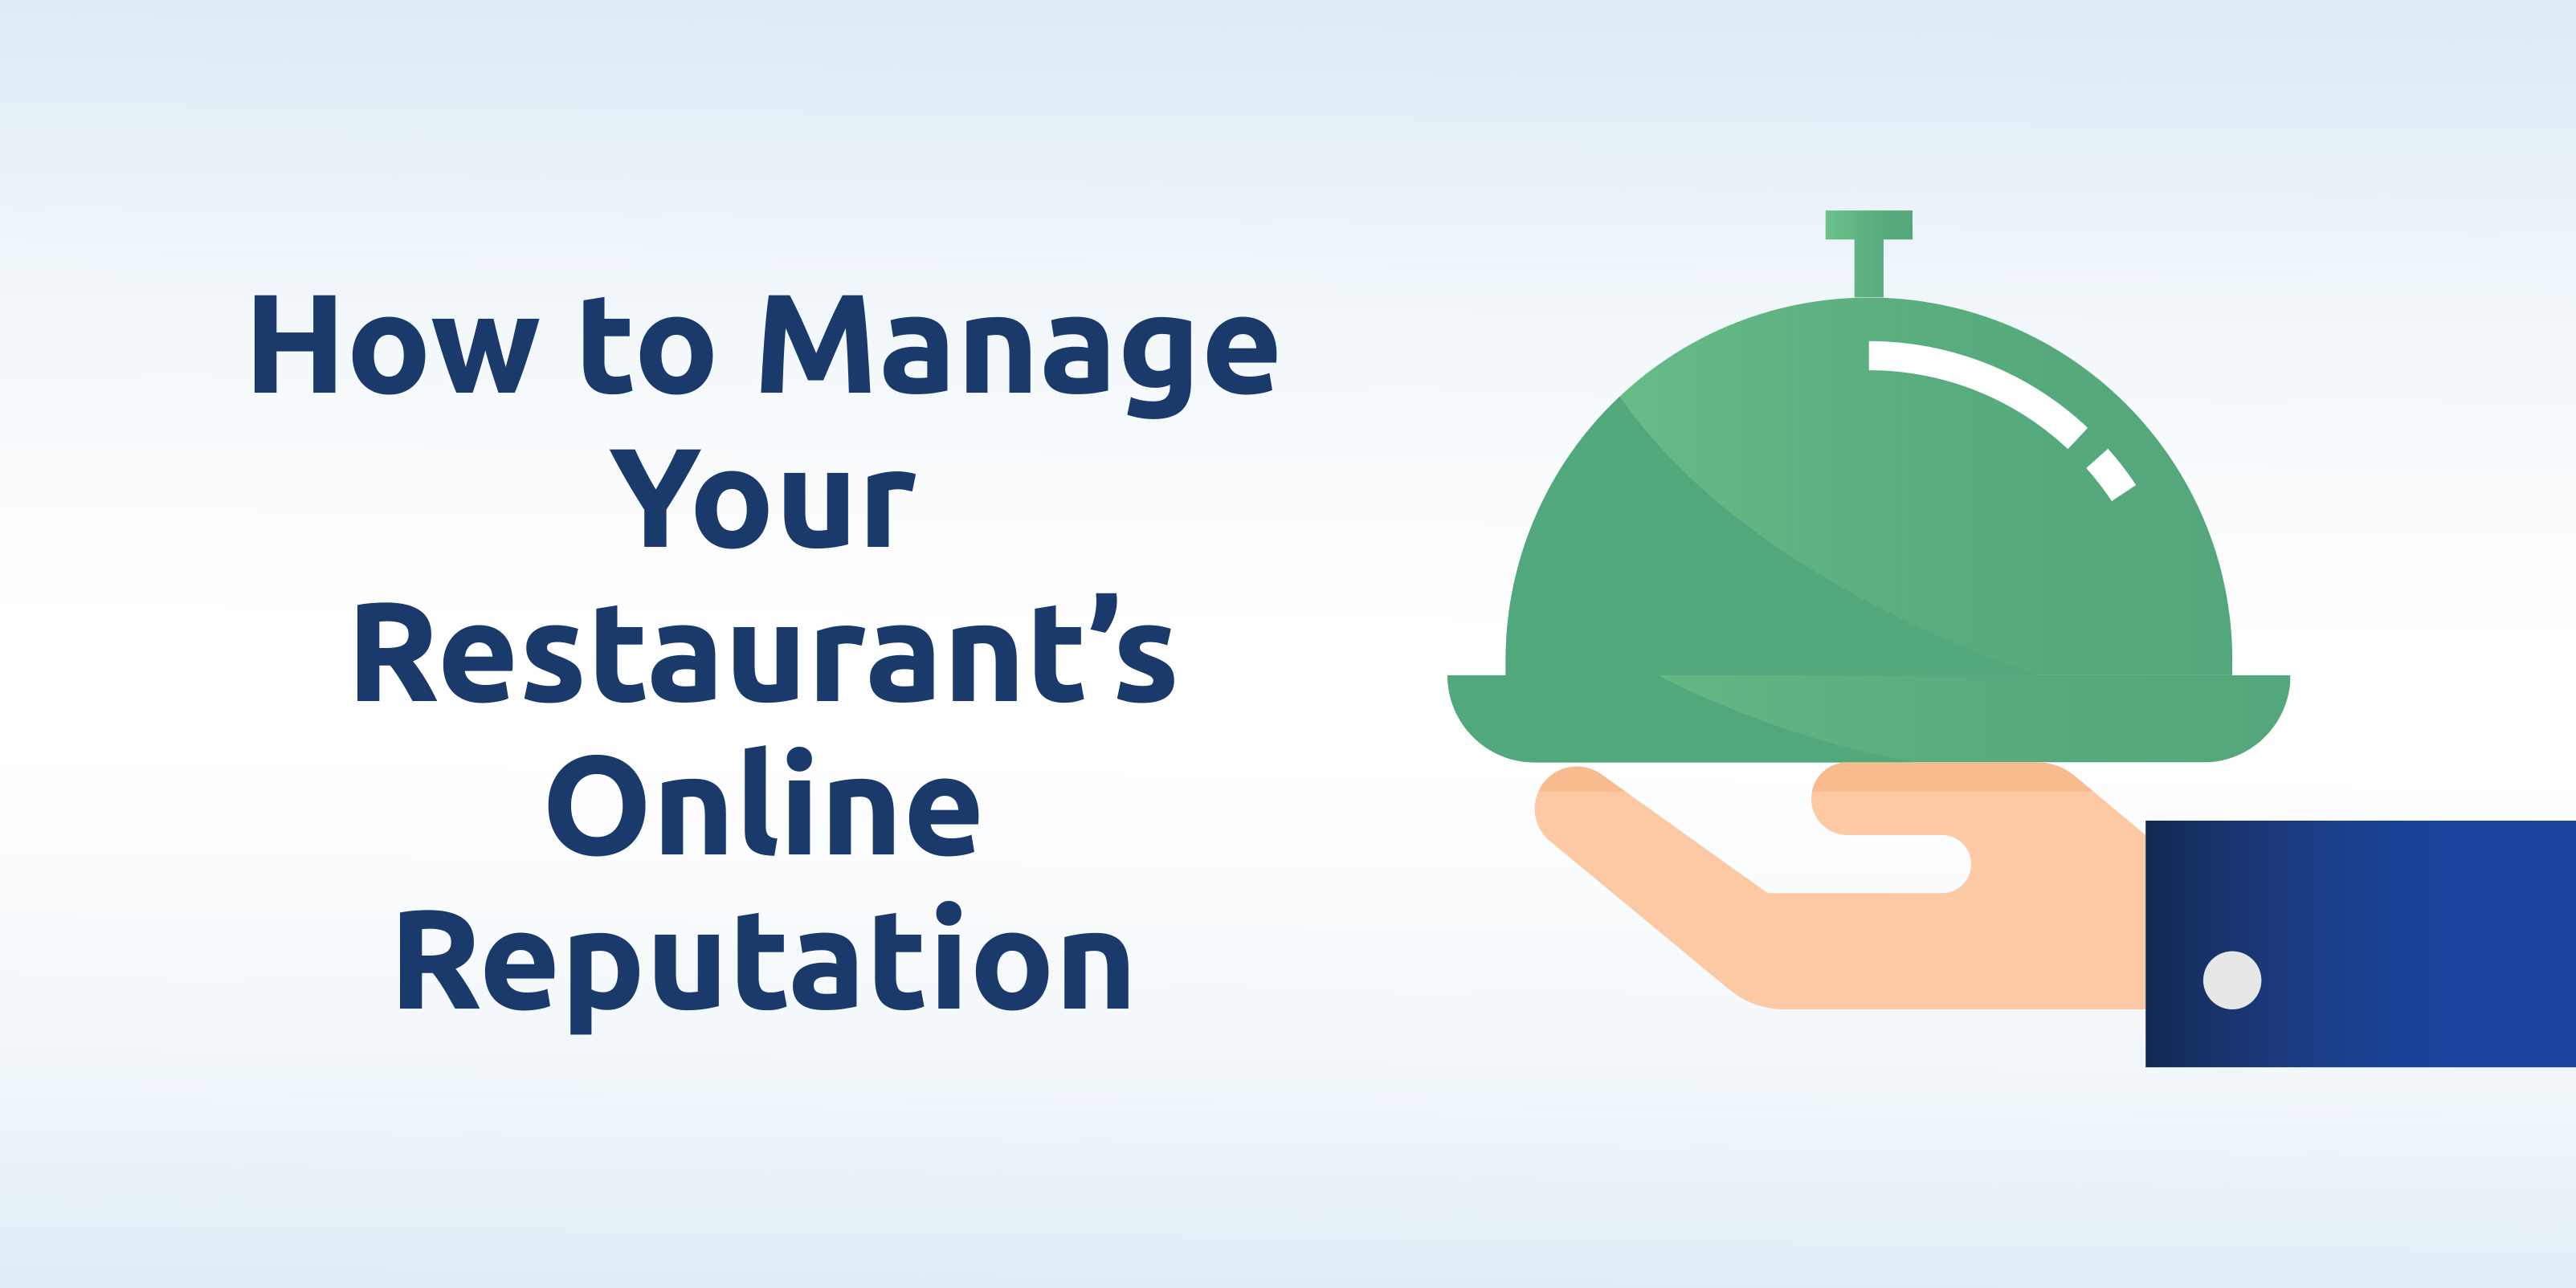 How to Manage Your Restaurant's Online Reputation